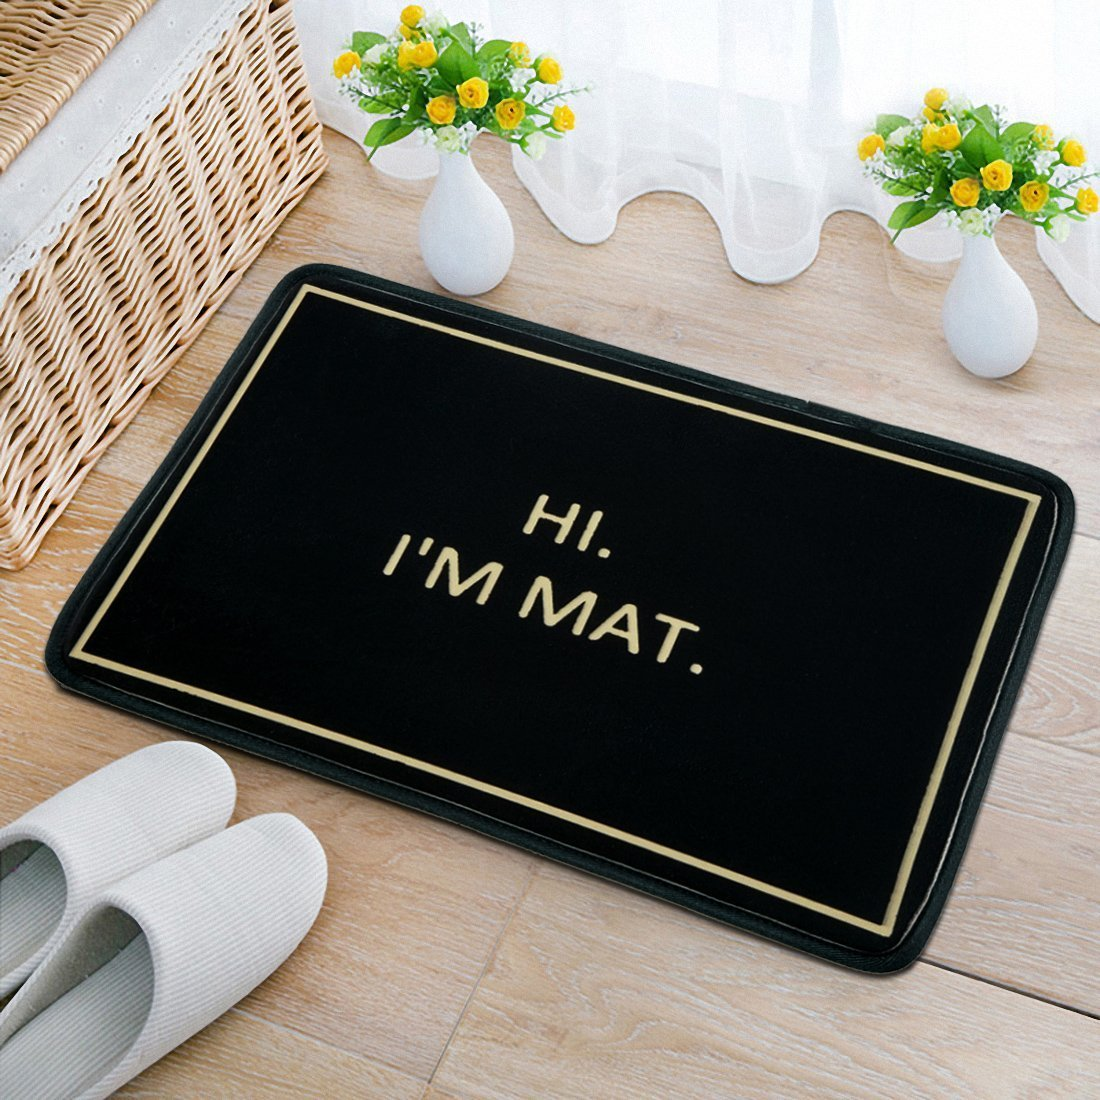 Hi I'm Mat printed for Home/Office/Bedroom Neoprene Rubber Non Slip Backing Machine Washable, 23.6''x15.7''by A-COUNT